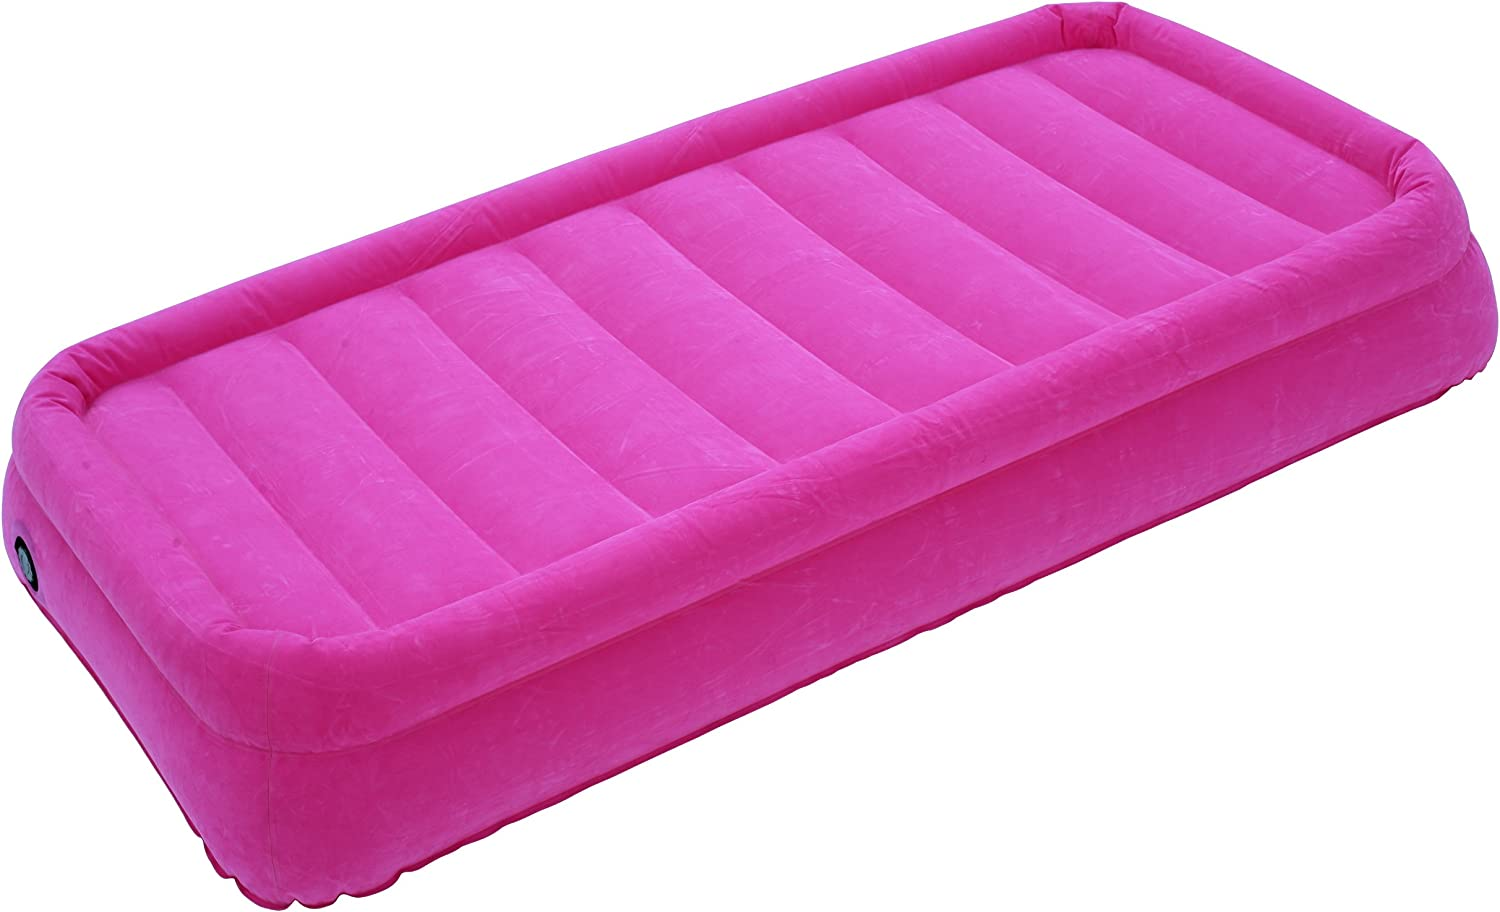 Twin AirCloud CAB-010 Magestic 14-Inch High Inflatable Pink Air Bed with AC Motor Pump